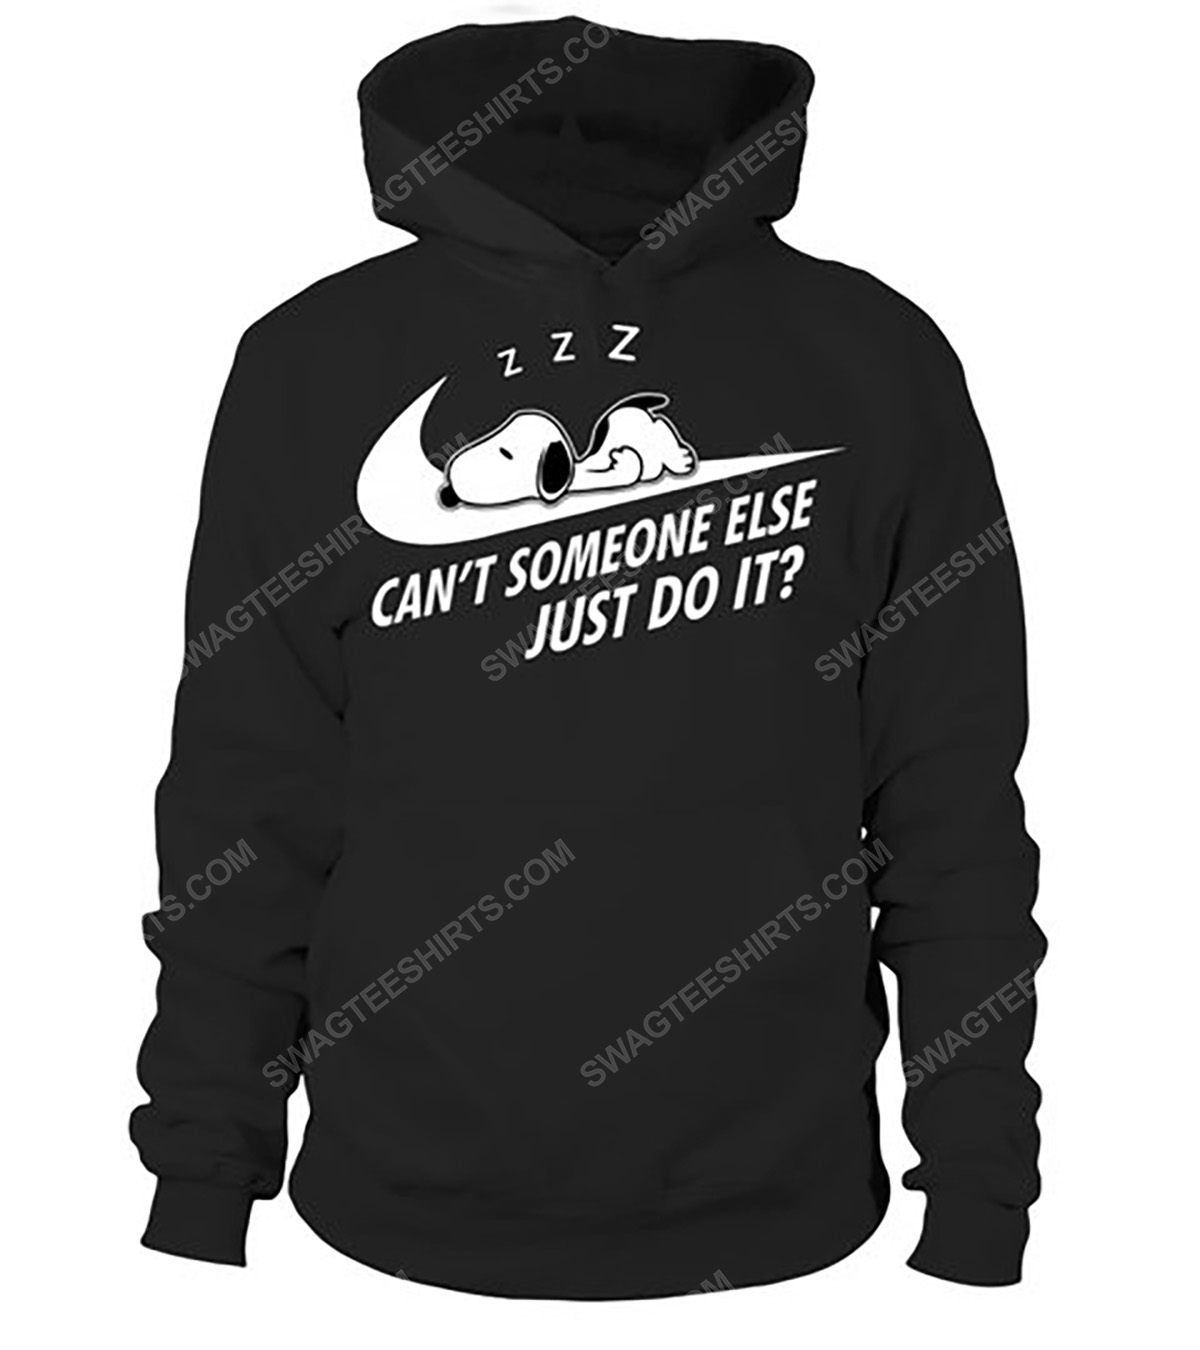 Can't someone else just do it snoopy dog hoodie 1